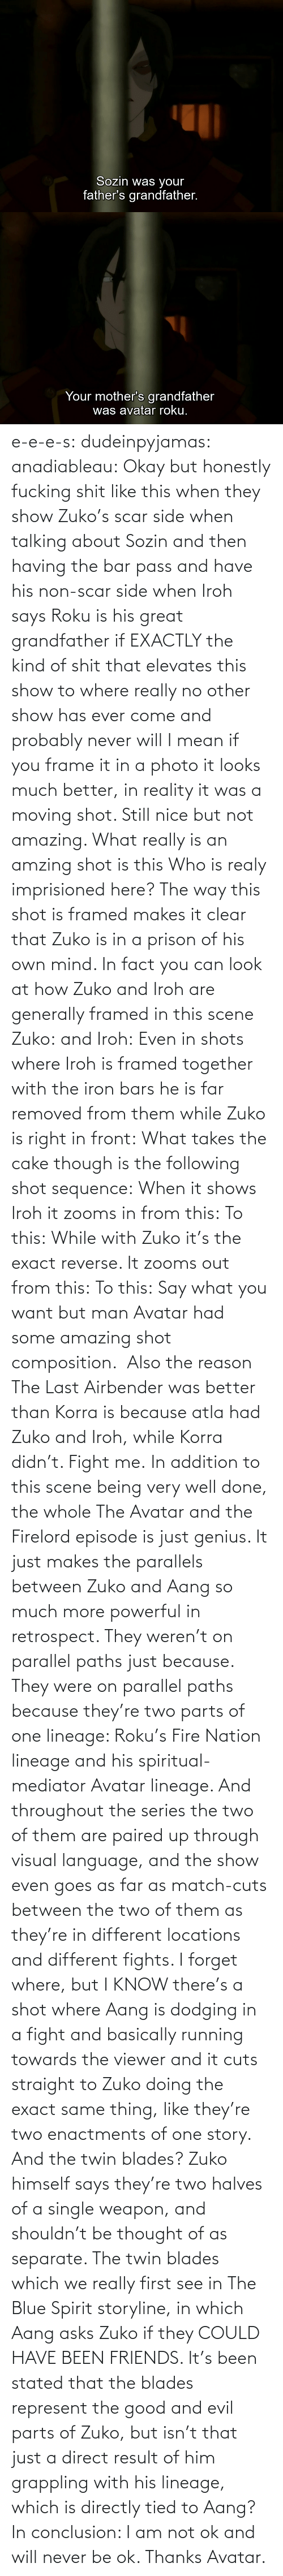 story: e-e-e-s: dudeinpyjamas:   anadiableau: Okay but honestly fucking shit like this when they show Zuko's scar side when talking about Sozin and then having the bar pass and have his non-scar side when Iroh says Roku is his great grandfather if EXACTLY the kind of shit that elevates this show to where really no other show has ever come and probably never will I mean if you frame it in a photo it looks much better, in reality it was a moving shot. Still nice but not amazing. What really is an amzing shot is this Who is realy imprisioned here? The way this shot is framed makes it clear that Zuko is in a prison of his own mind. In fact you can look at how Zuko and Iroh are generally framed in this scene Zuko: and Iroh: Even in shots where Iroh is framed together with the iron bars he is far removed from them while Zuko is right in front:  What takes the cake though is the following shot sequence: When it shows Iroh it zooms in from this: To this: While with Zuko it's the exact reverse. It zooms out from this: To this: Say what you want but man Avatar had some amazing shot composition.   Also the reason The Last Airbender was better than Korra is because atla had Zuko and Iroh, while Korra didn't. Fight me.    In addition to this scene being very well done, the whole The Avatar and the Firelord episode is just genius.  It just makes the parallels between Zuko and Aang so much more powerful in retrospect.  They weren't on parallel paths just because.  They were on parallel paths because they're two parts of one lineage: Roku's Fire Nation lineage and his spiritual-mediator Avatar lineage.  And throughout the series the two of them are paired up through visual language, and the show even goes as far as match-cuts between the two of them as they're in different locations and different fights.  I forget where, but I KNOW there's a shot where Aang is dodging in a fight and basically running towards the viewer and it cuts straight to Zuko doing the exact same thing, like they're two enactments of one story.   And the twin blades?  Zuko himself says they're two halves of a single weapon, and shouldn't be thought of as separate.  The twin blades which we really first see in The Blue Spirit storyline, in which Aang asks Zuko if they COULD HAVE BEEN FRIENDS.  It's been stated that the blades represent the good and evil parts of Zuko, but isn't that just a direct result of him grappling with his lineage, which is directly tied to Aang? In conclusion: I am not ok and will never be ok.  Thanks Avatar.